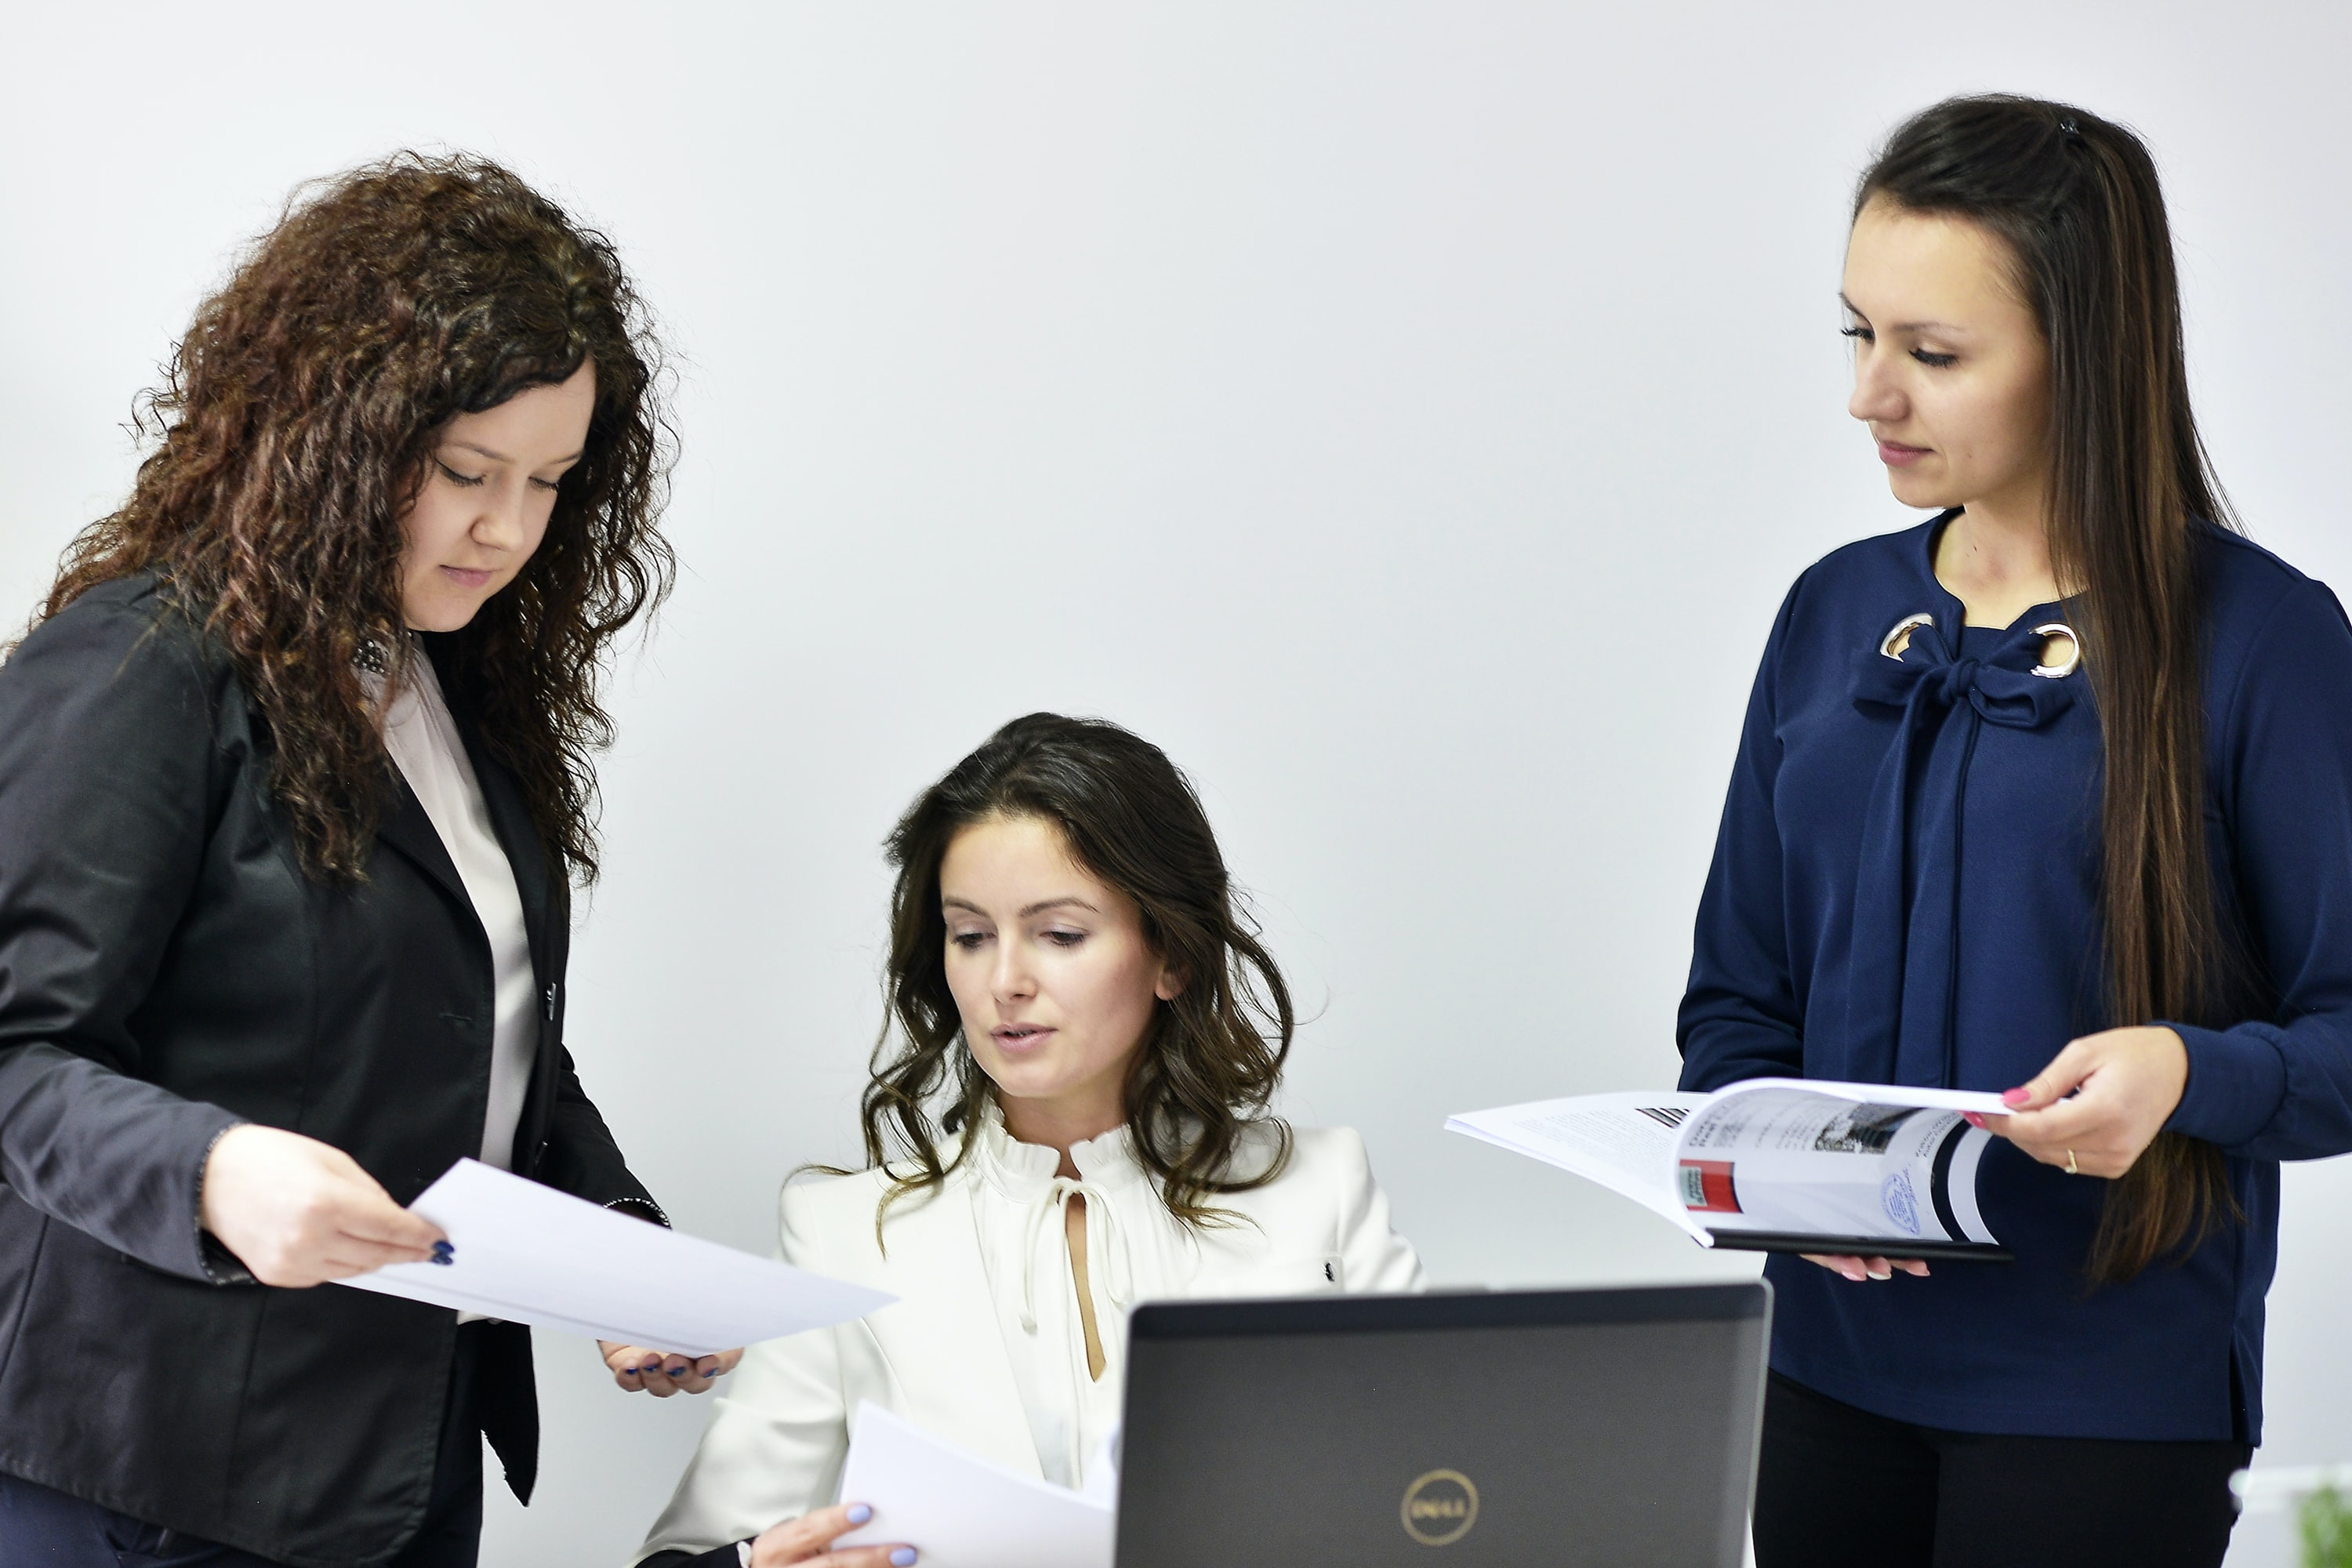 woman in black top showing papers to woman in white shirt near Dell laptop